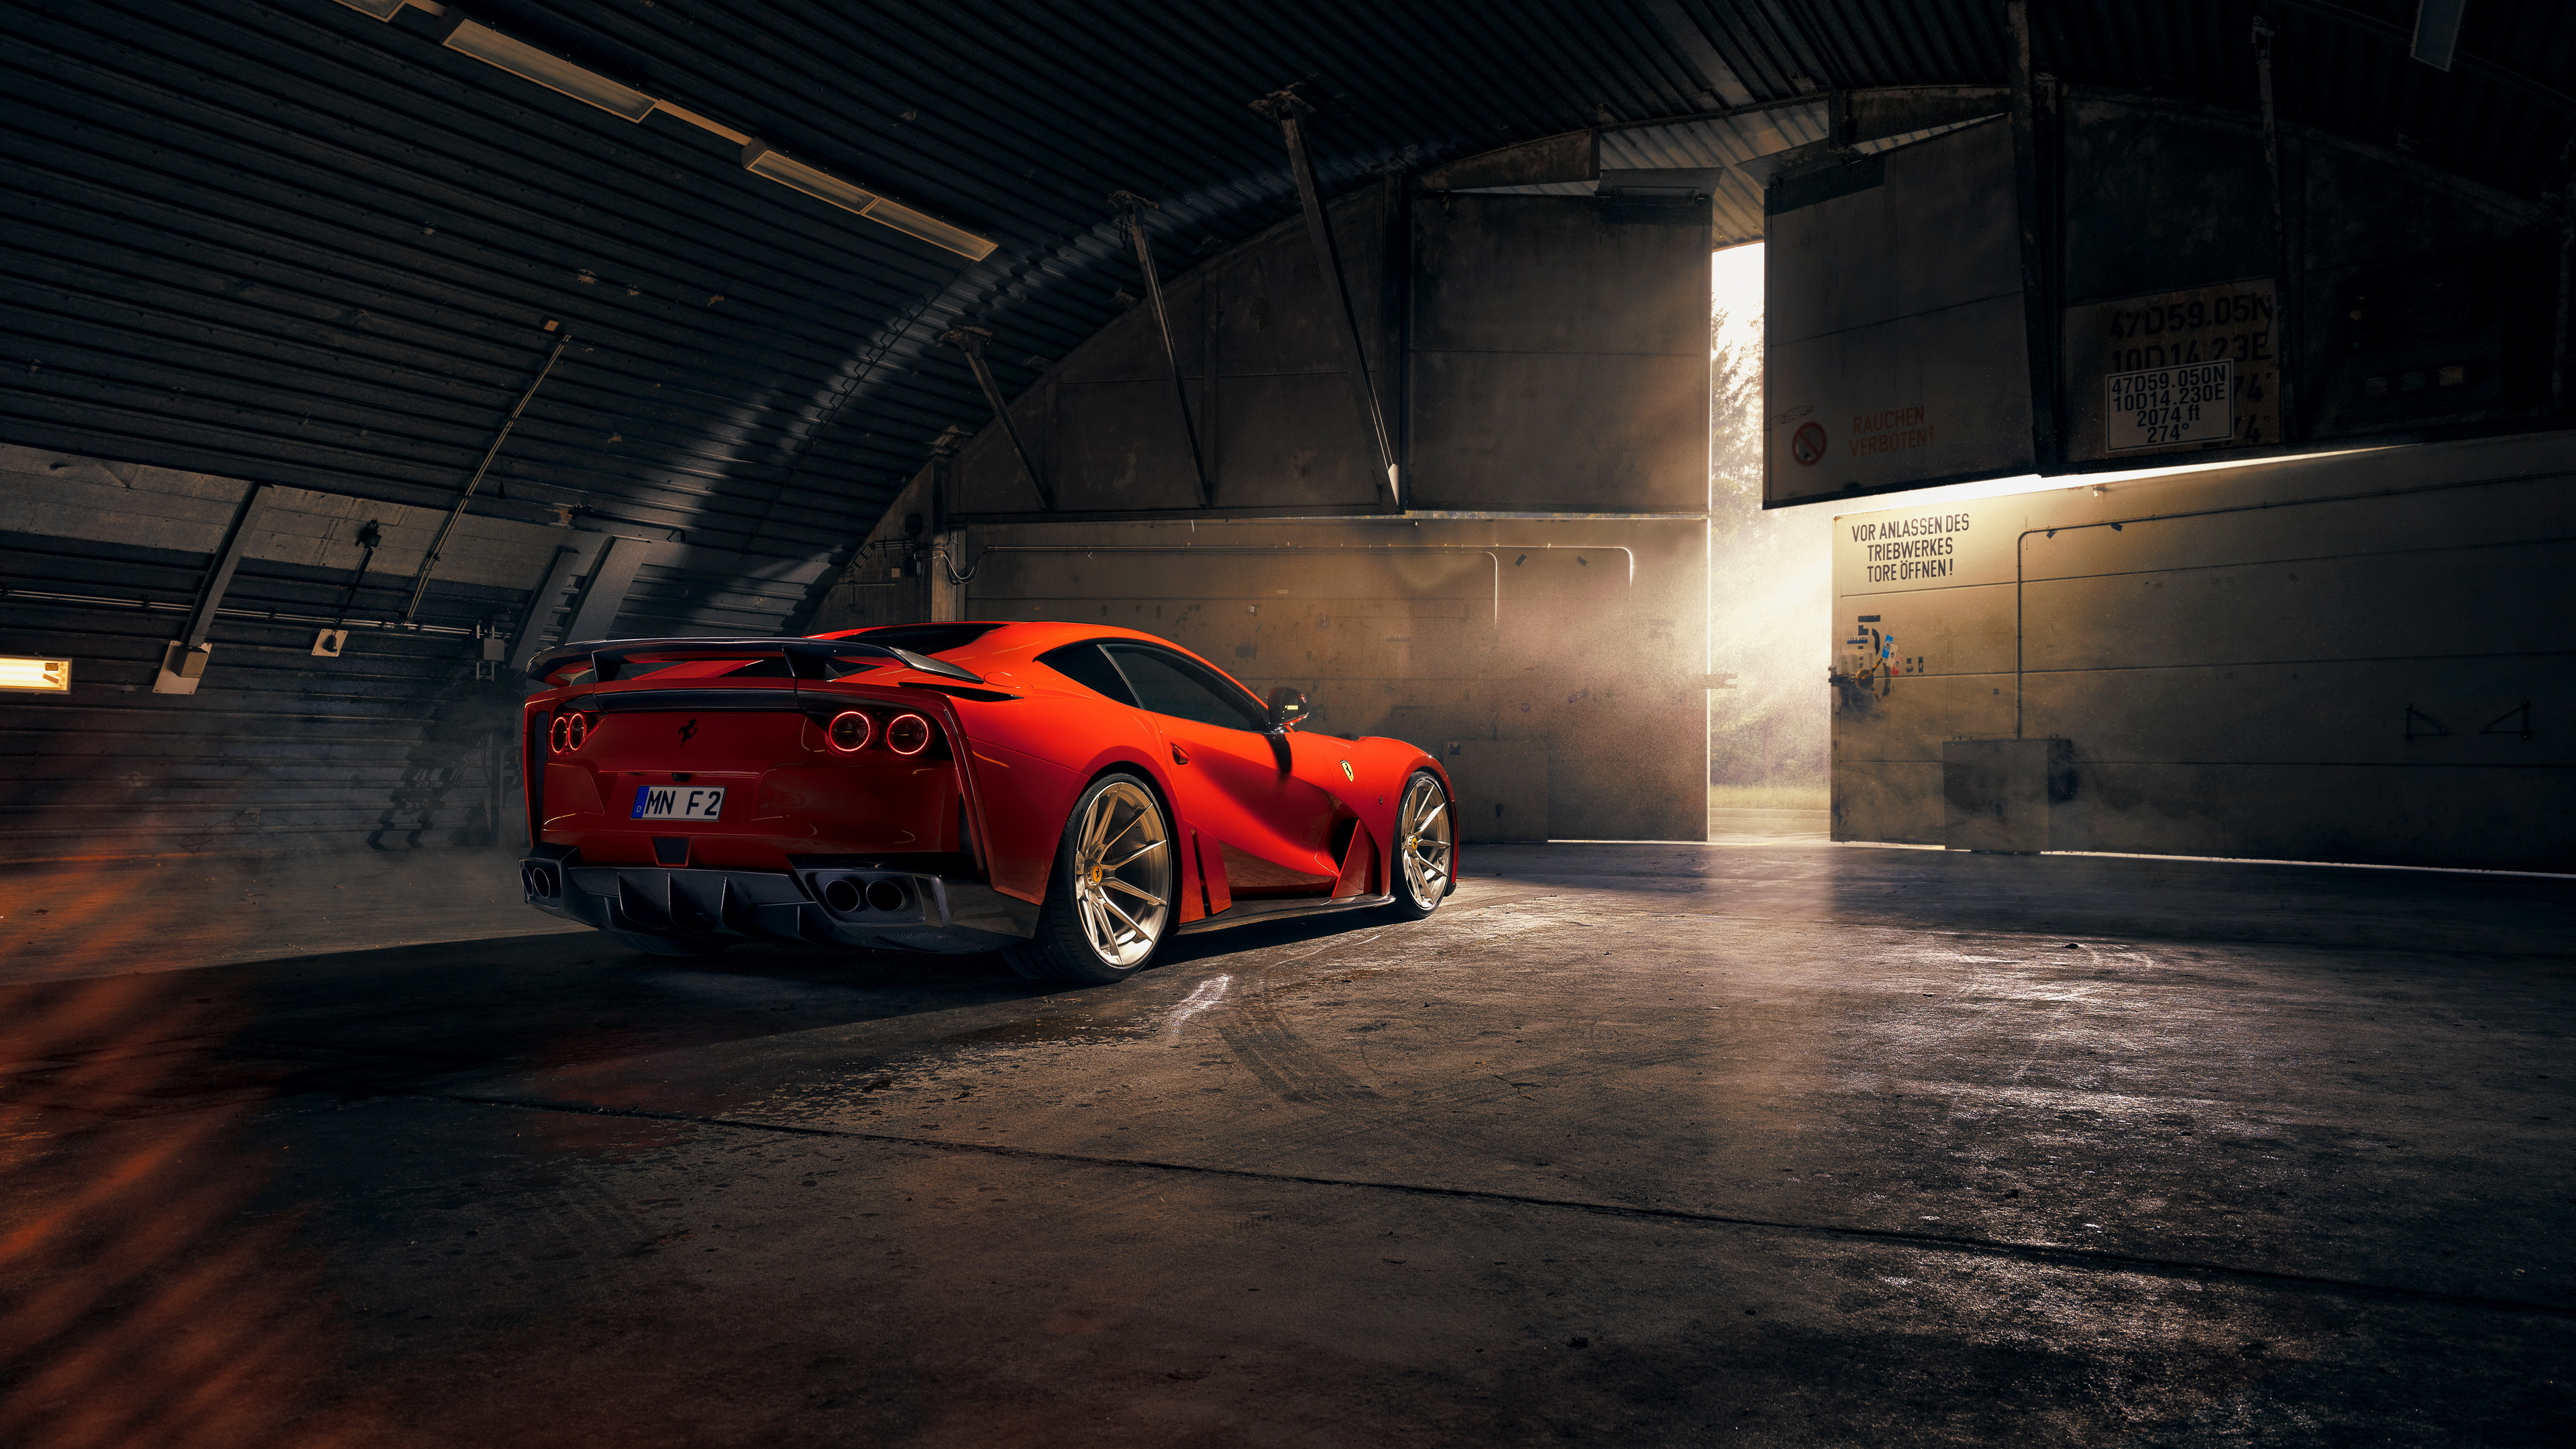 2019 novitec ferrari 812 superfast n largo rear 1560534309 - 2019 Novitec Ferrari 812 Superfast N Largo Rear - hd-wallpapers, ferrari wallpapers, ferrari 812 wallpapers, cars wallpapers, 4k-wallpapers, 2019 cars wallpapers